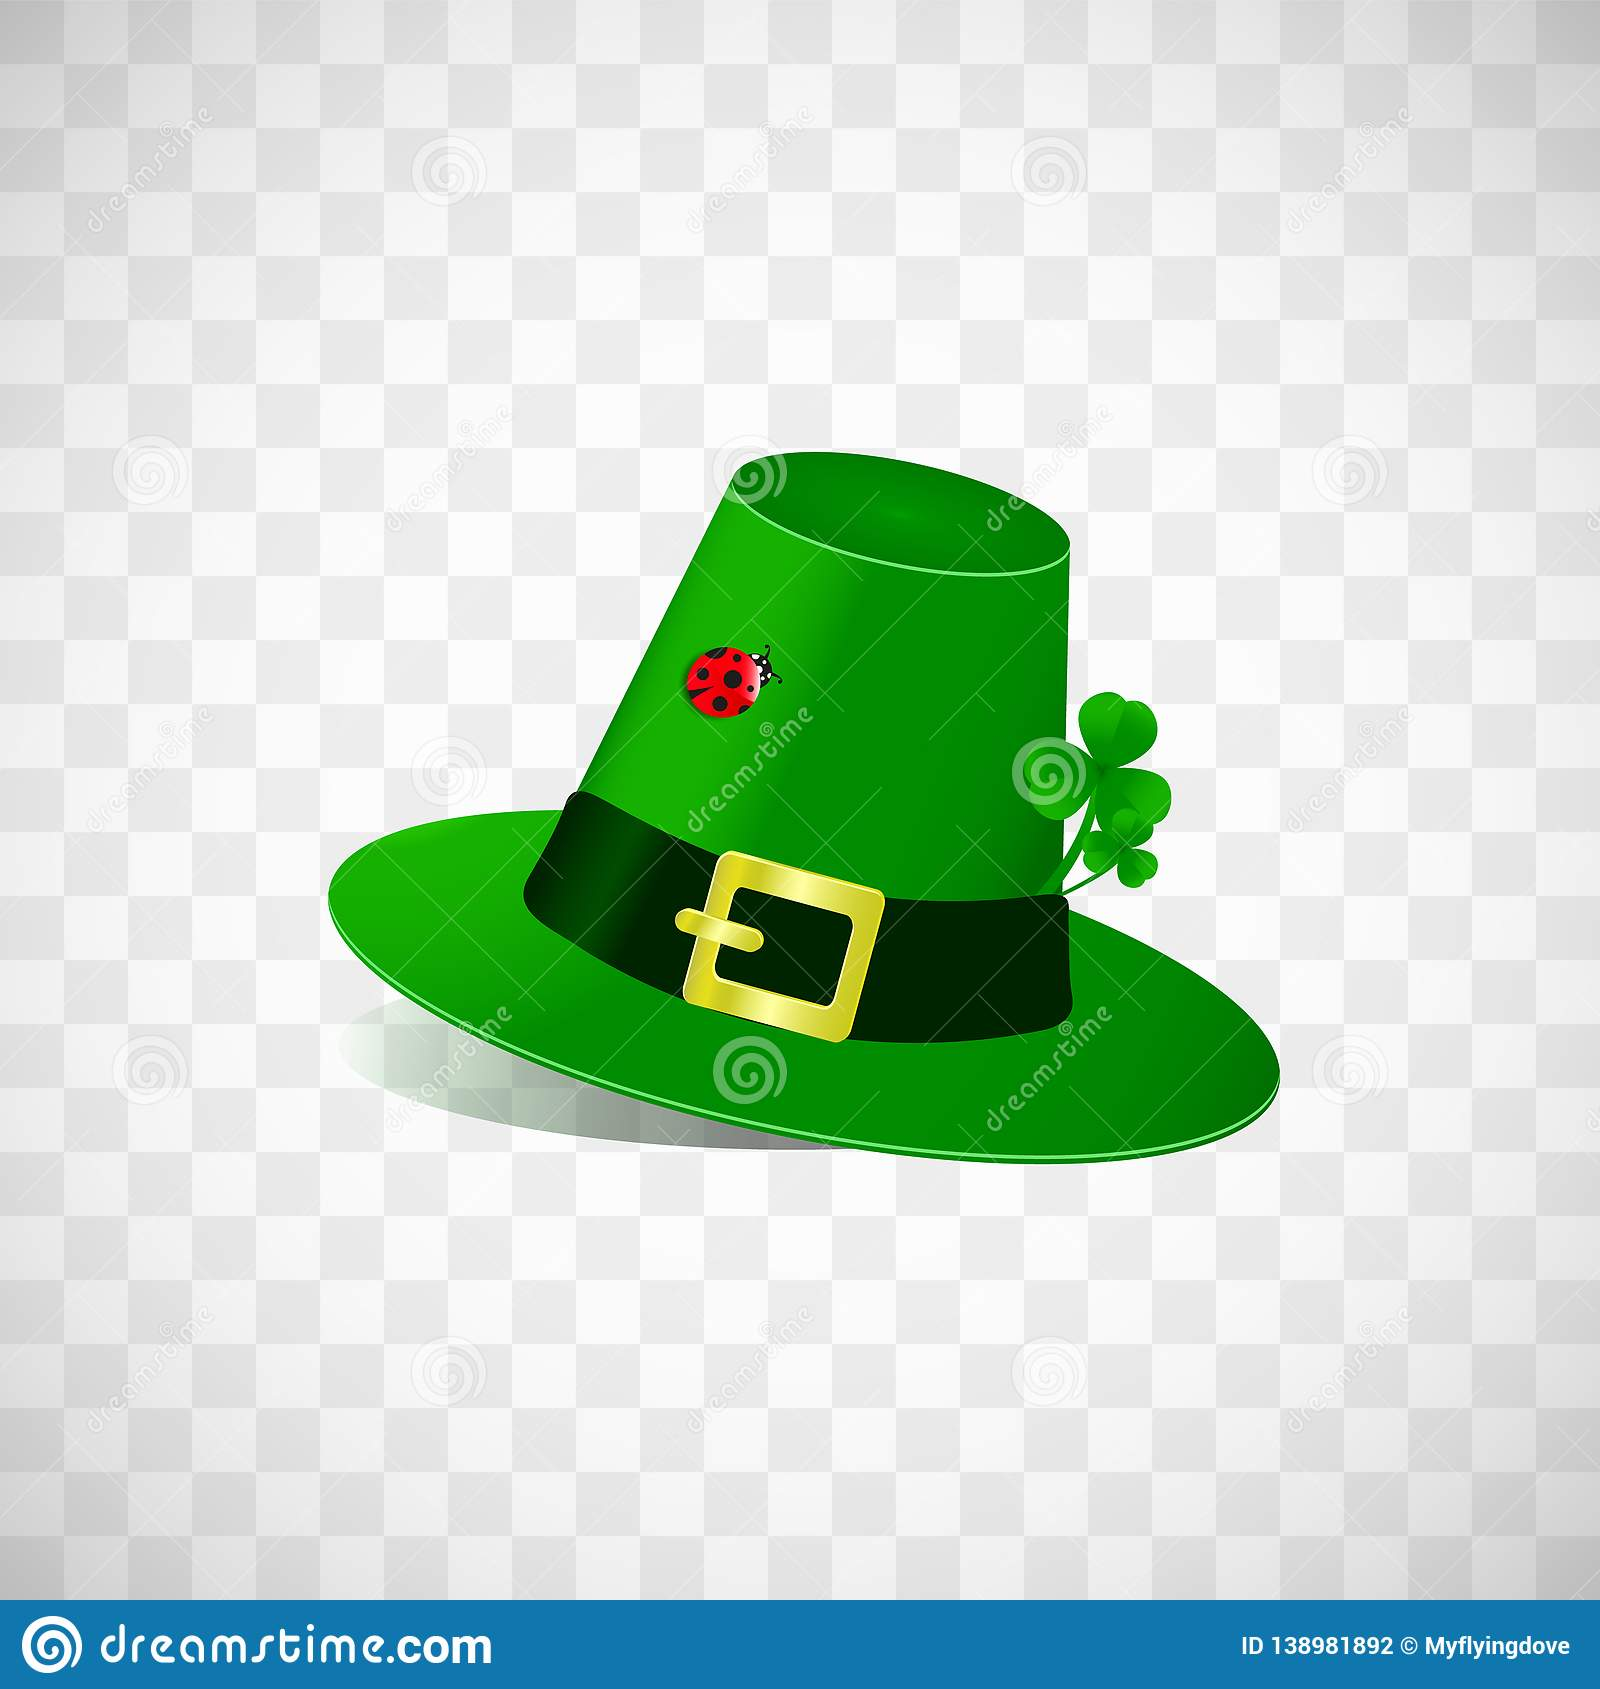 Leprechaun Hat With Fhree Leafed Clover And Ladybug Isolated On